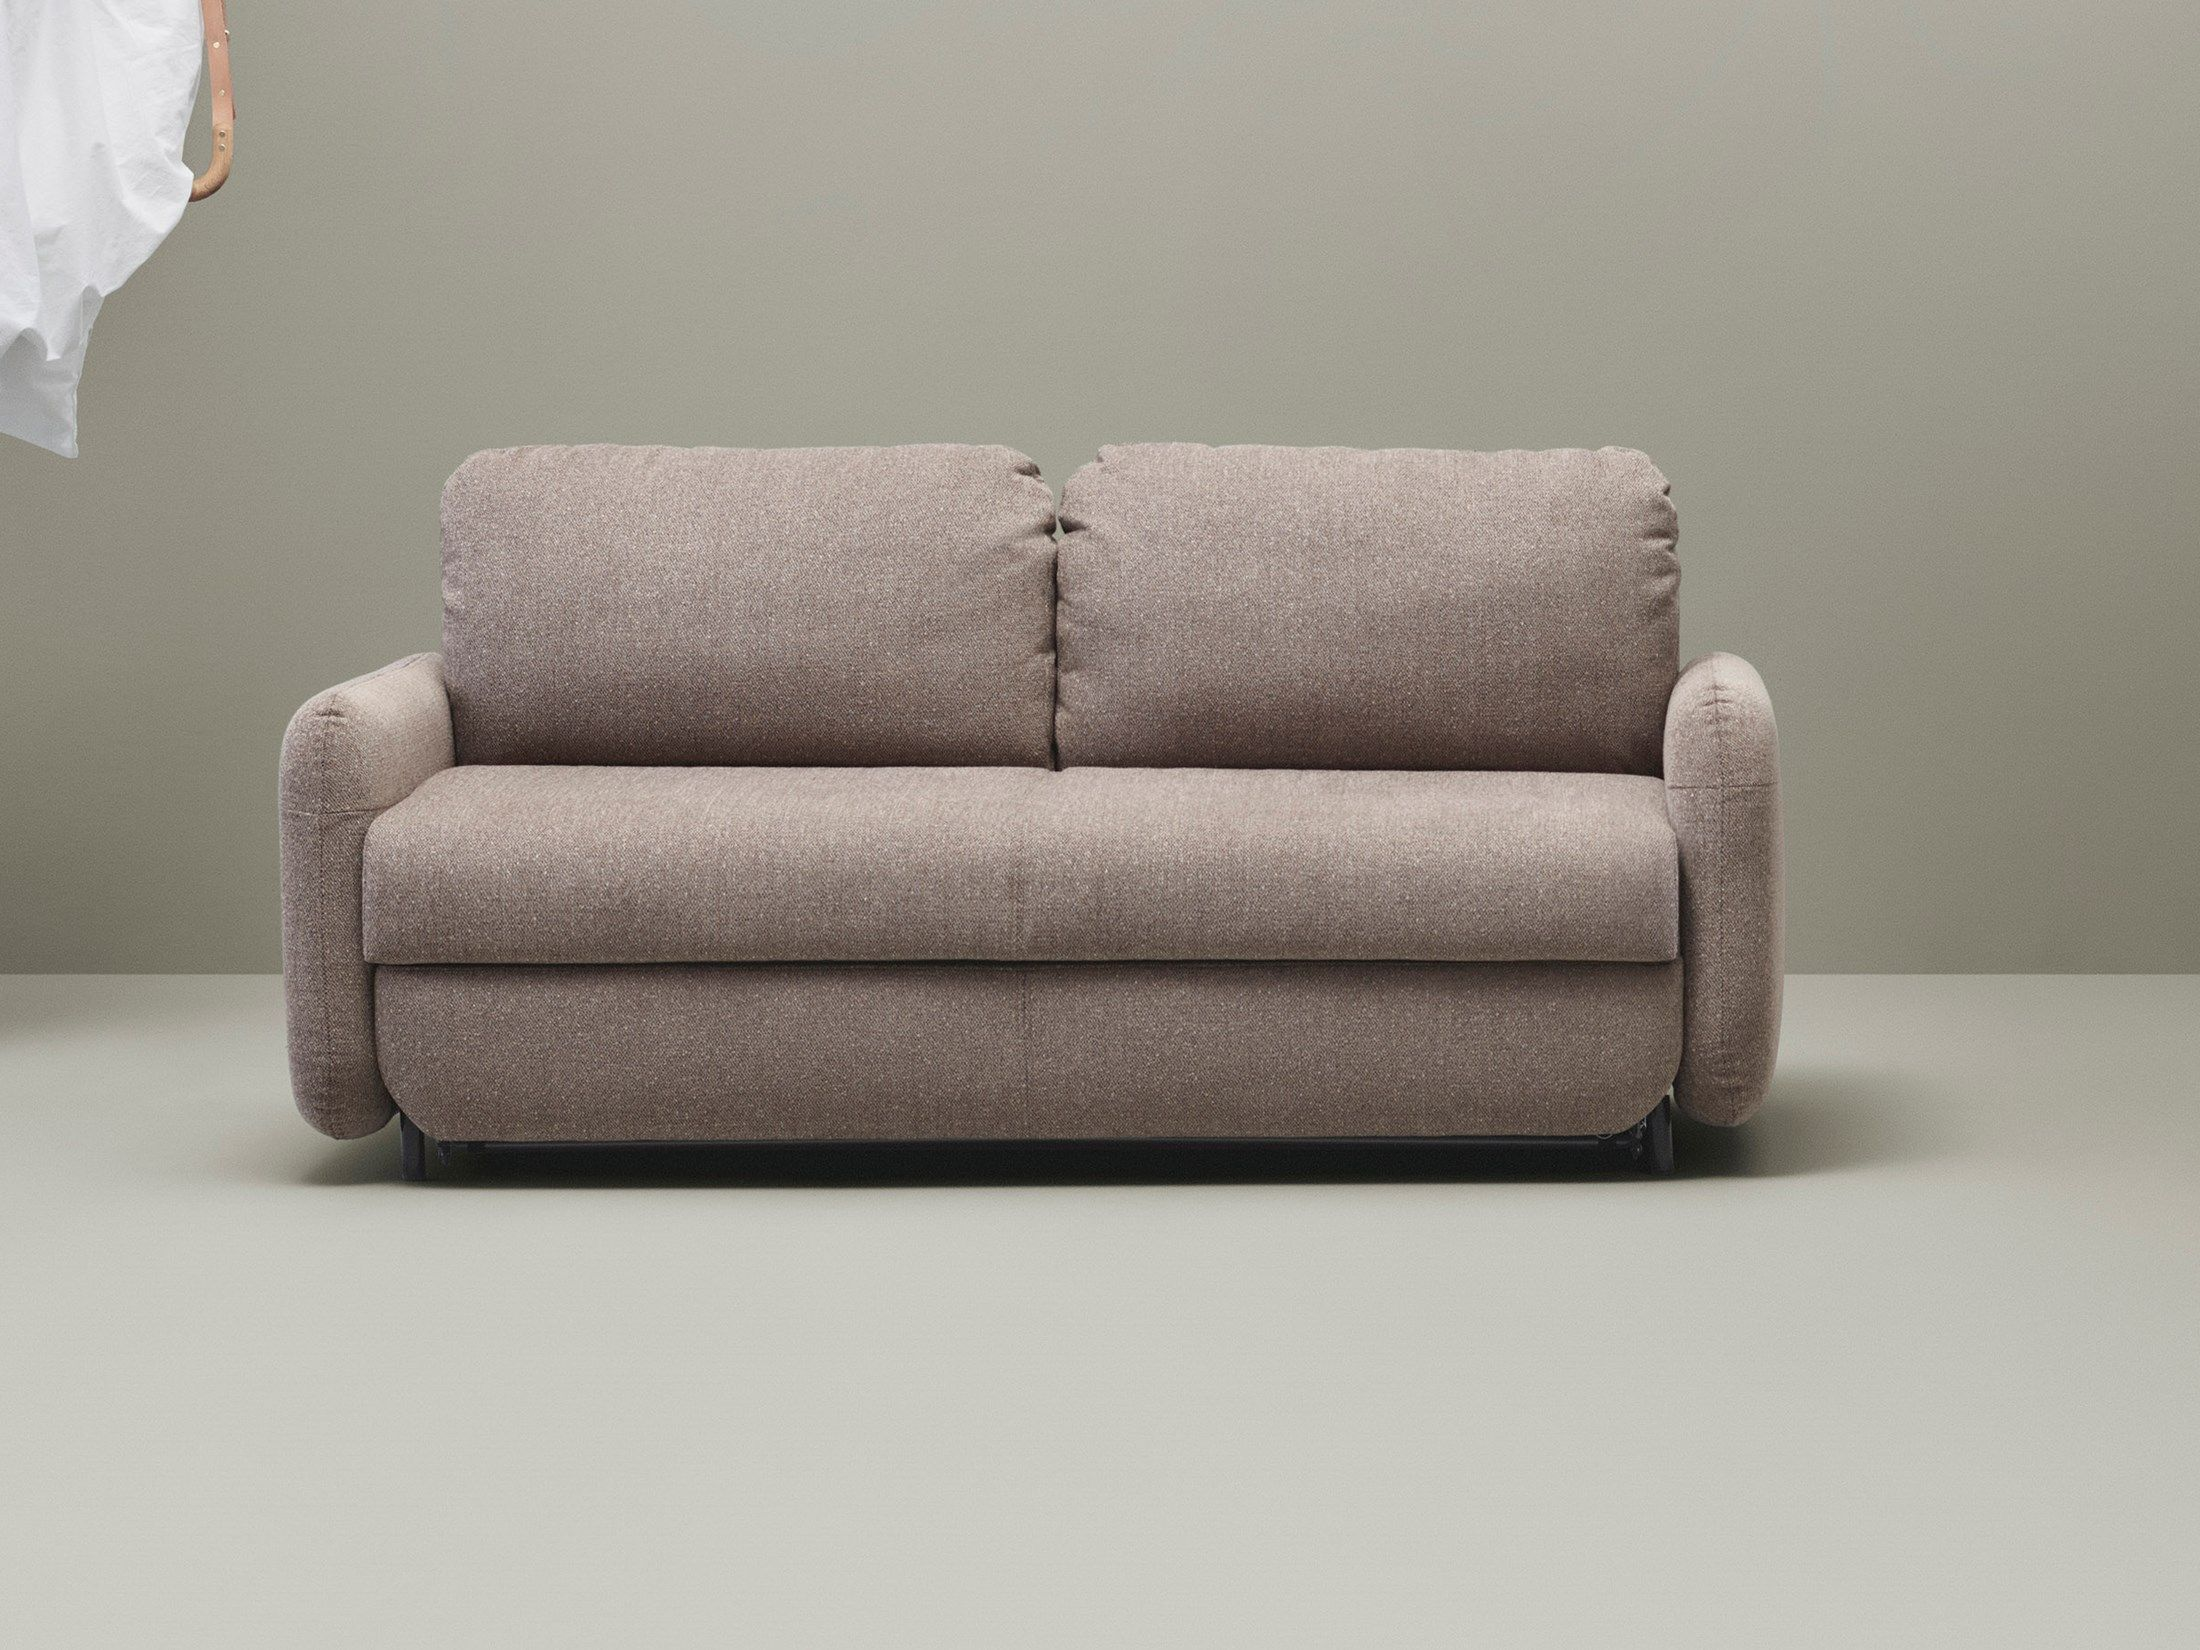 Fluffy 2 Sitzer Schlafcouch Fawn Stoff Antracit Schlafcouch